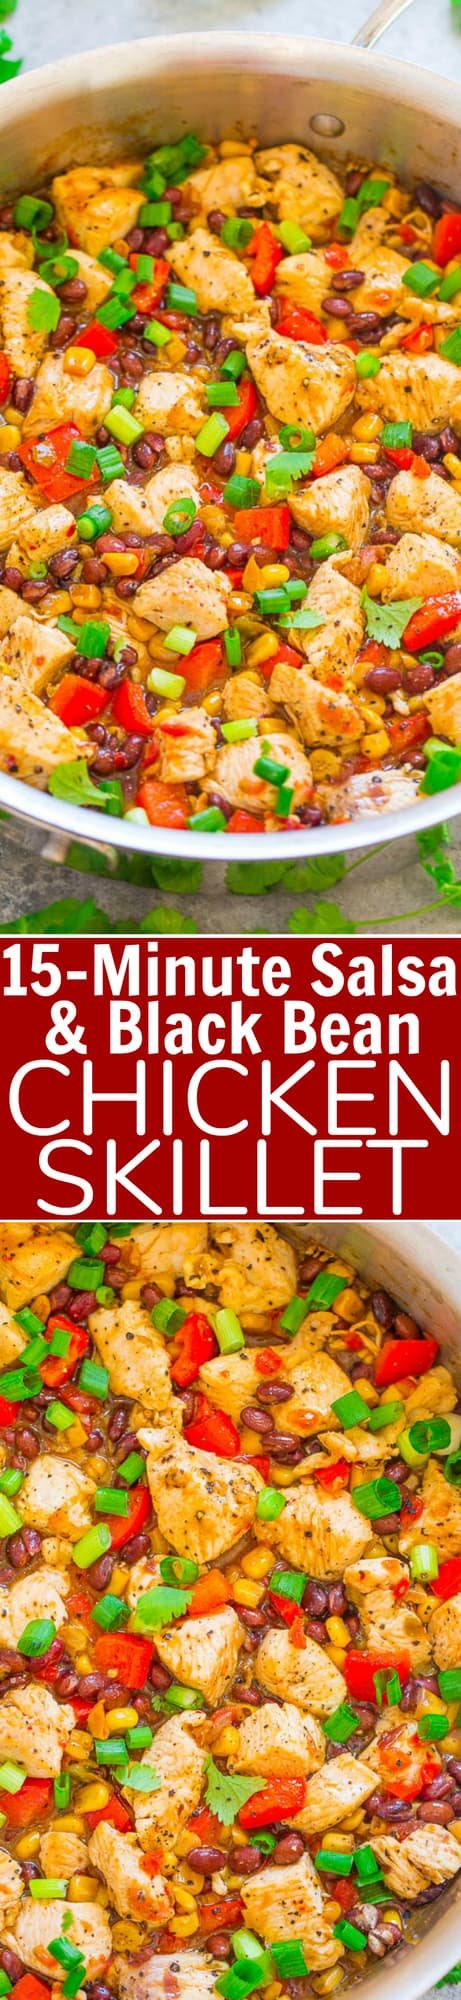 15-Minute Salsa and Black Bean Chicken Skillet - Fast, EASY, family-friendly, healthy yet hearty, naturally gluten-free, Mexican-inspired meal!! The PERECT recipe to jazz up your usual weeknight chicken dinner!!